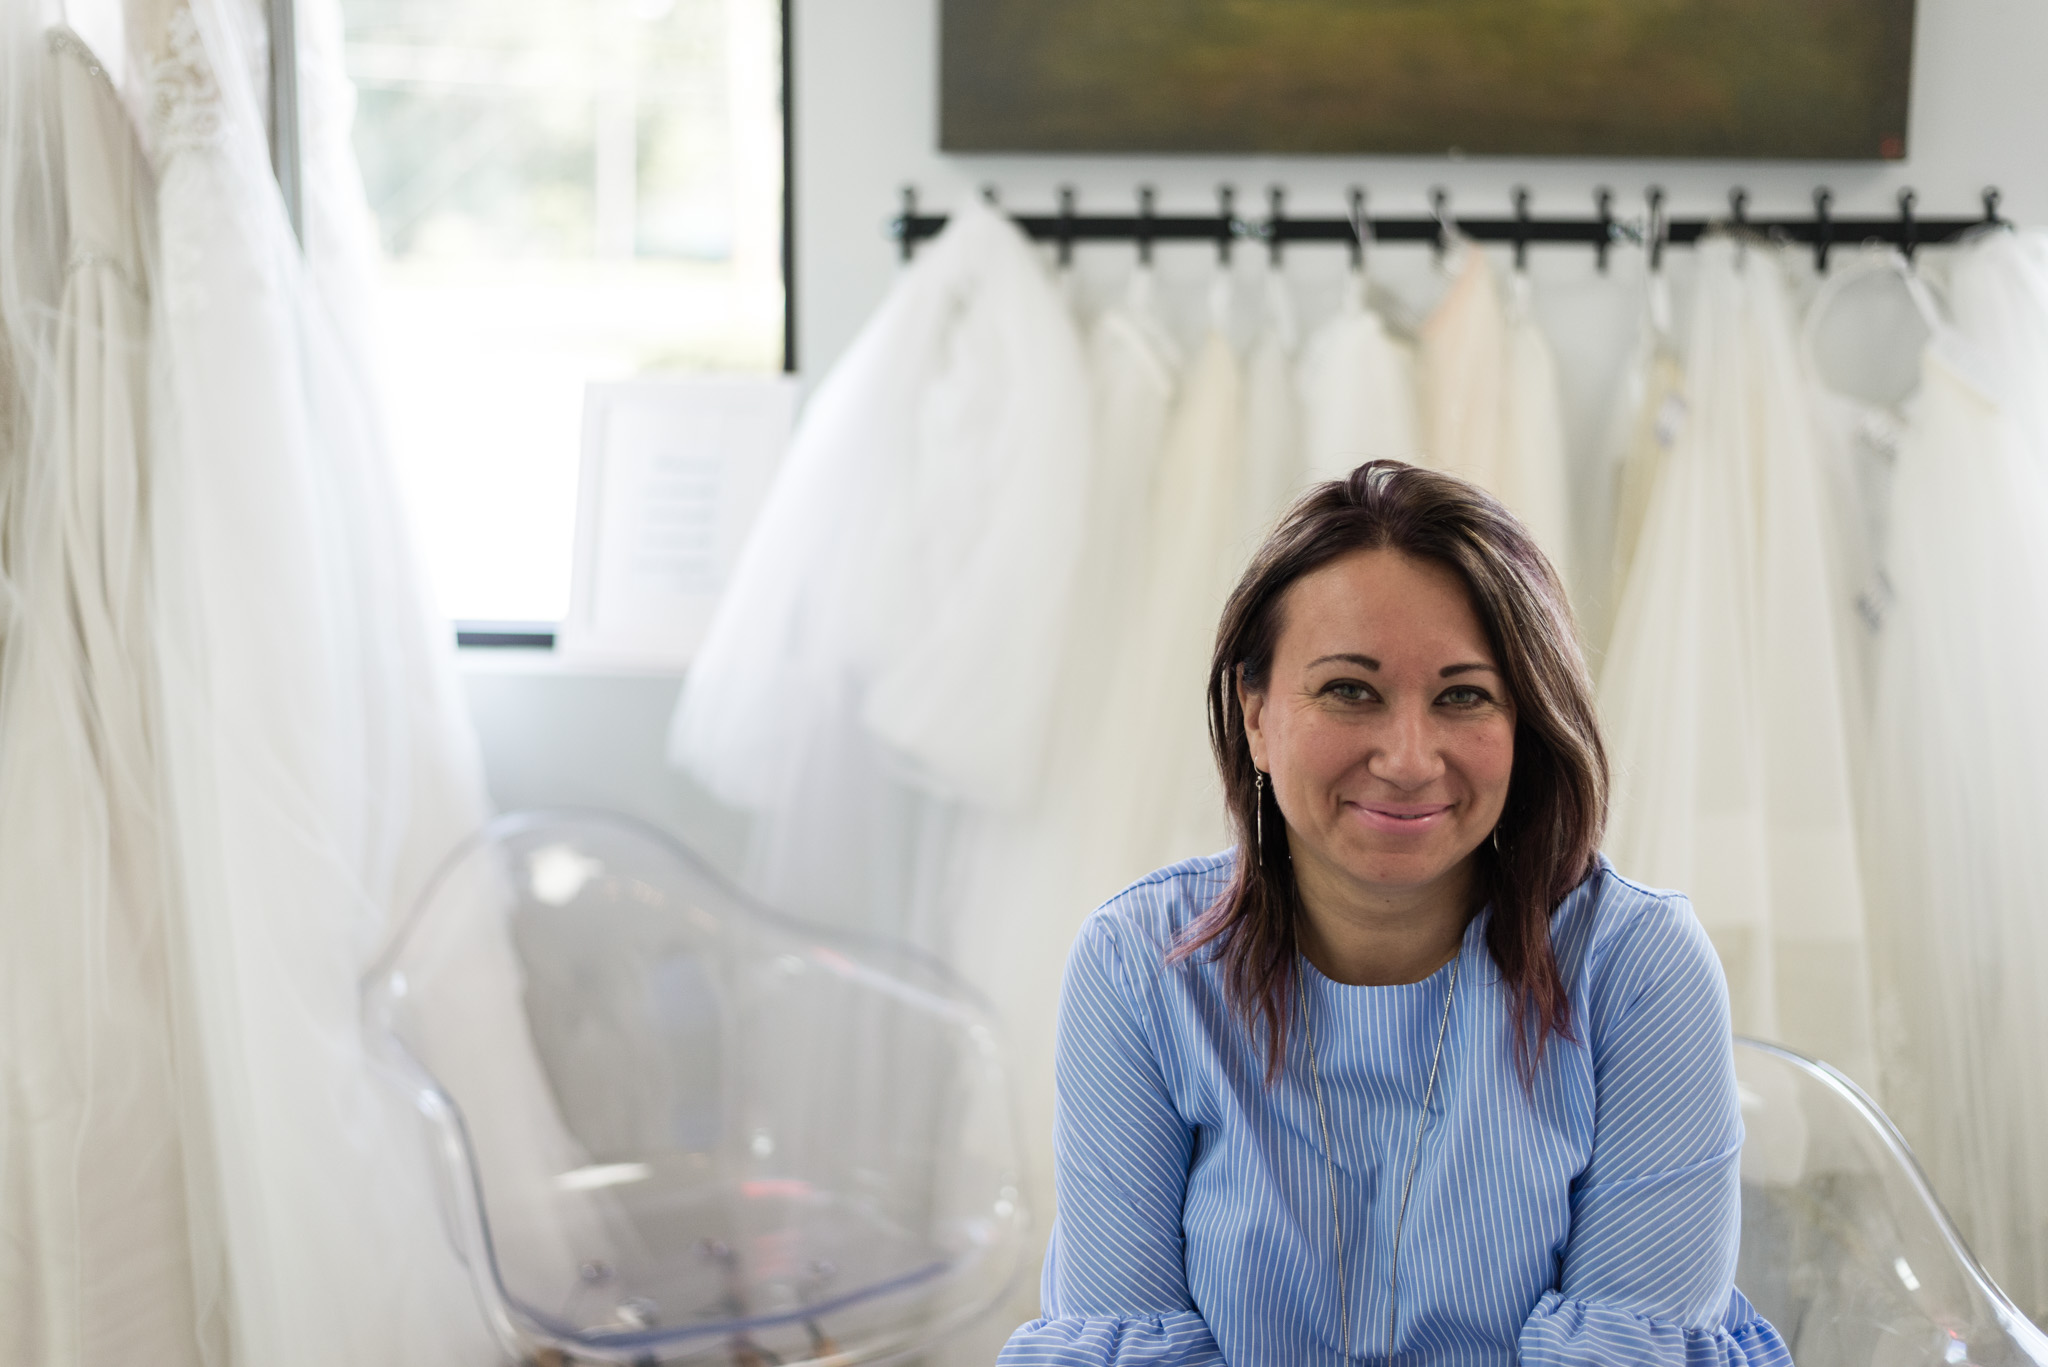 We love helping brides find unique & one-of-a-kind dresses. - We work hard to ensure our brides feel gorgeous, comfortable, and show-stopping in our gowns. These gowns turn heads and we love to help brides feel their absolute best!